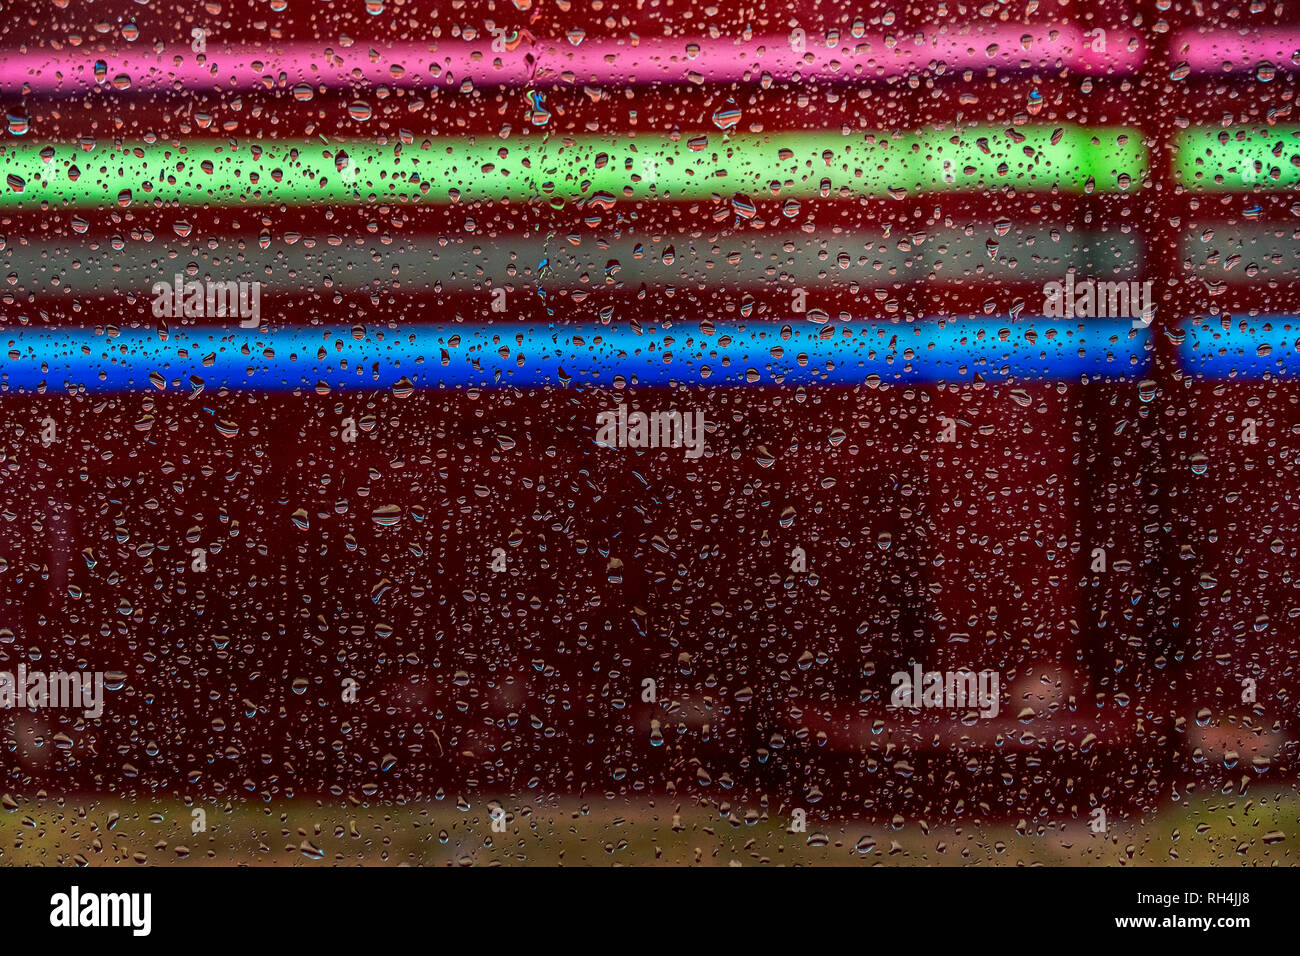 drops reflected in the window with colorful reflections - Stock Image